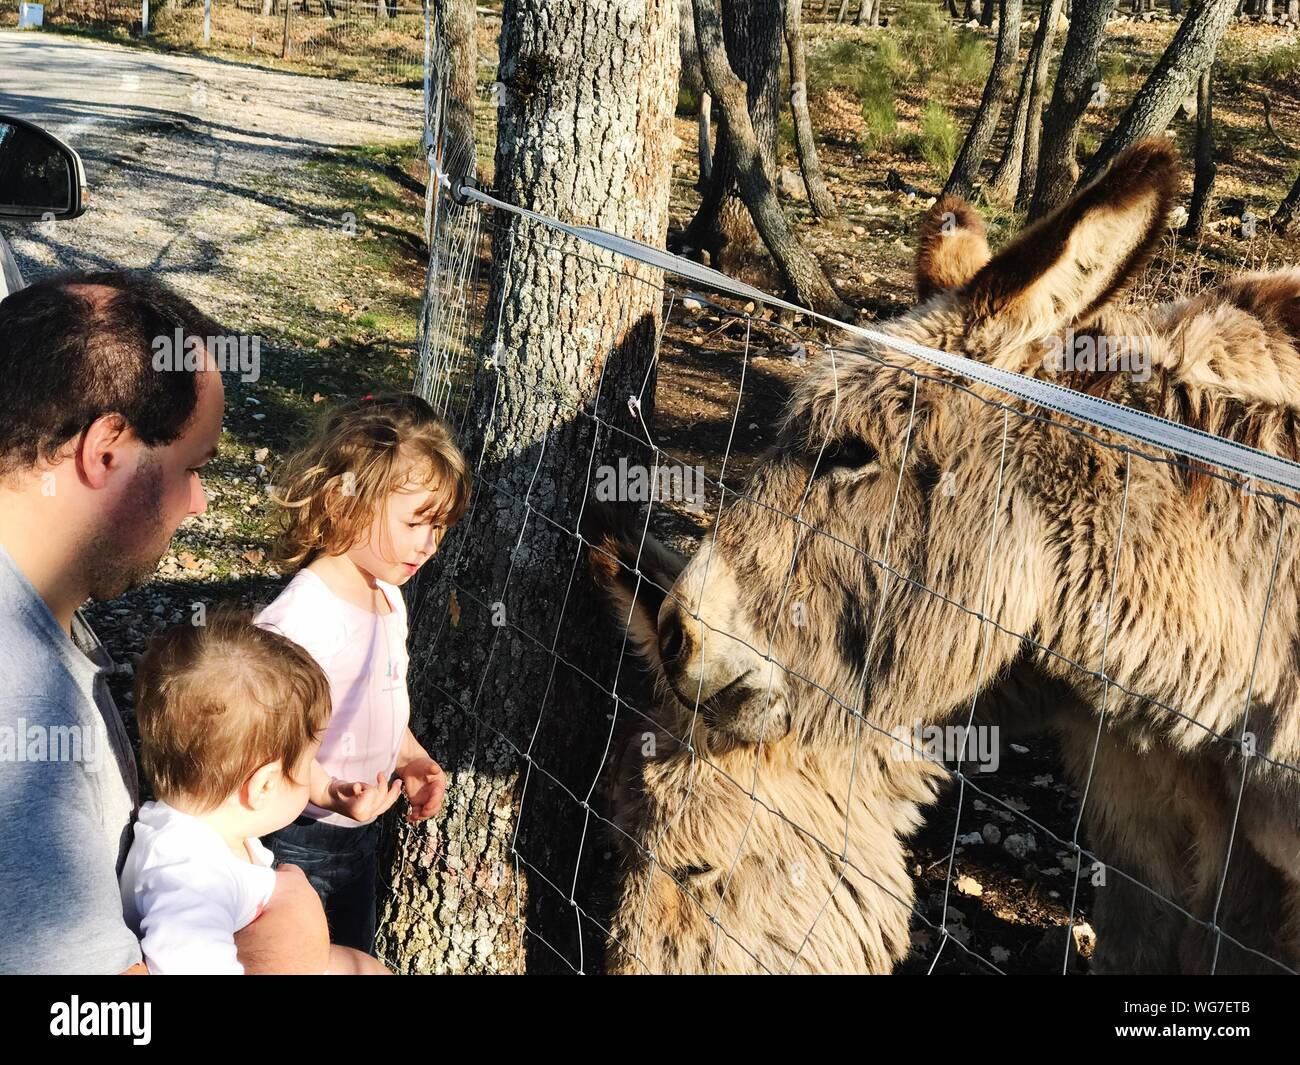 Family Looking At Donkeys By Fence On Sunny Day Stock Photo